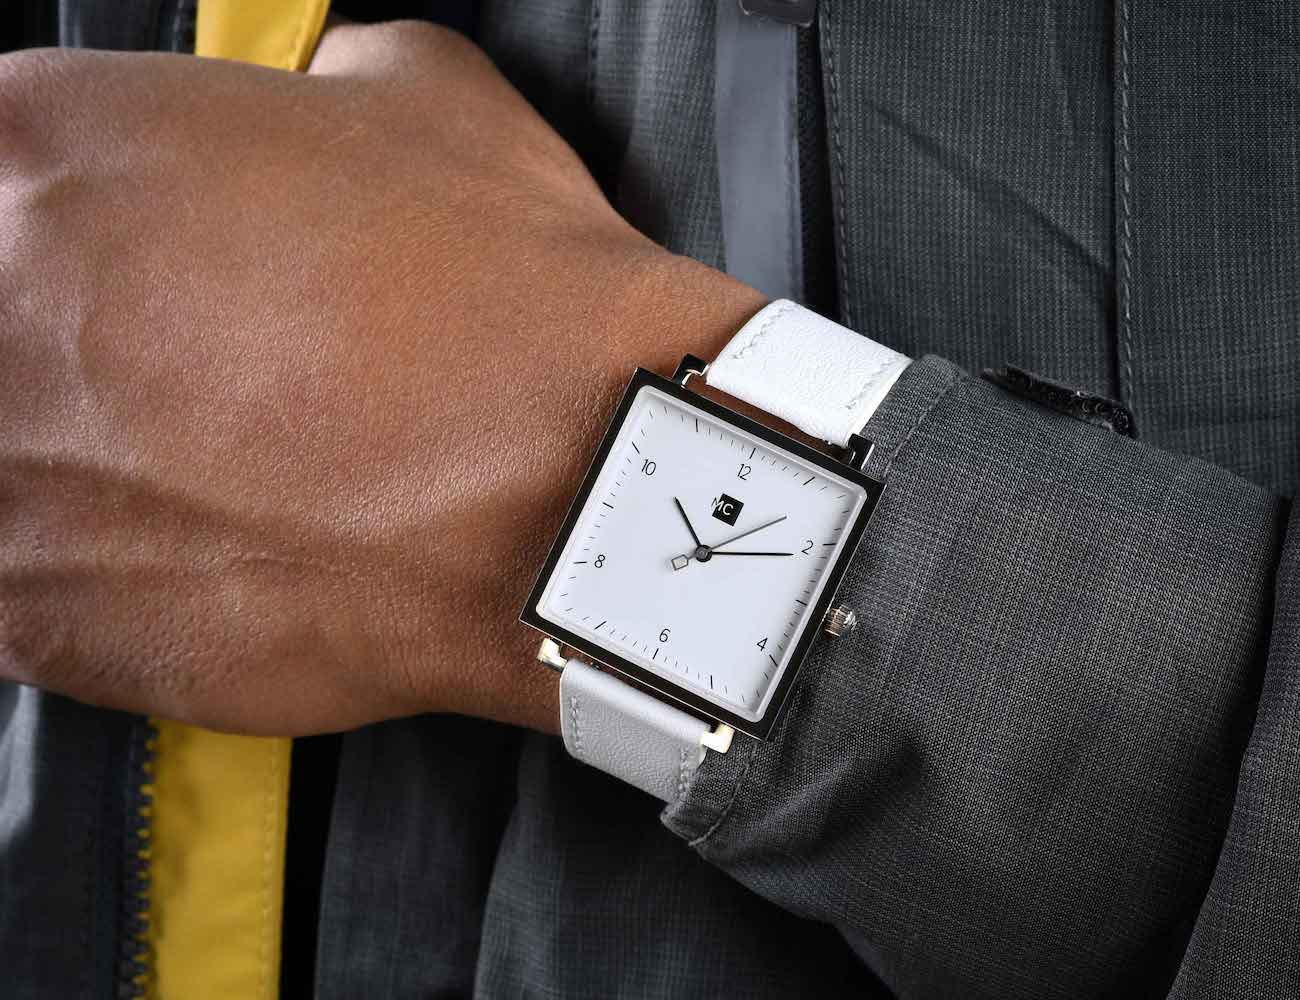 MC Luxurious Square Watch combines beauty and affordability